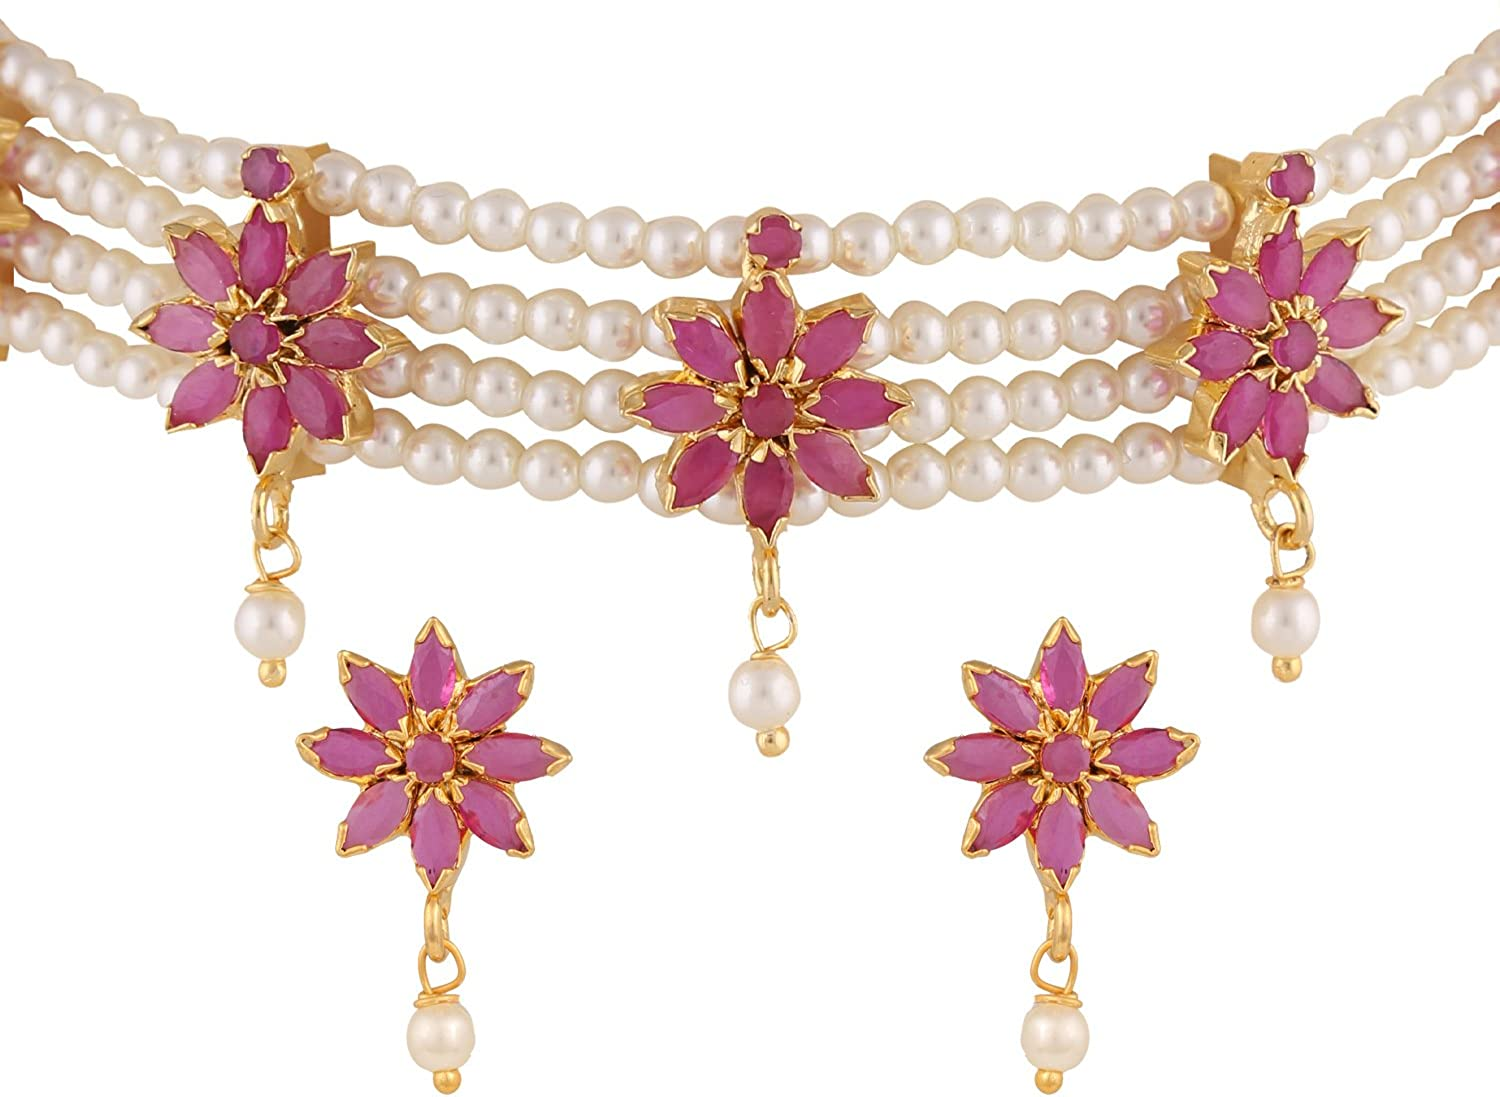 Efulgenz Indian Traditional 18K Gold Tone Plated Ruby Pearl Beaded Collar Strand Moti Choker Necklace Jewelery Festive Costume Accessories for Women and Girls